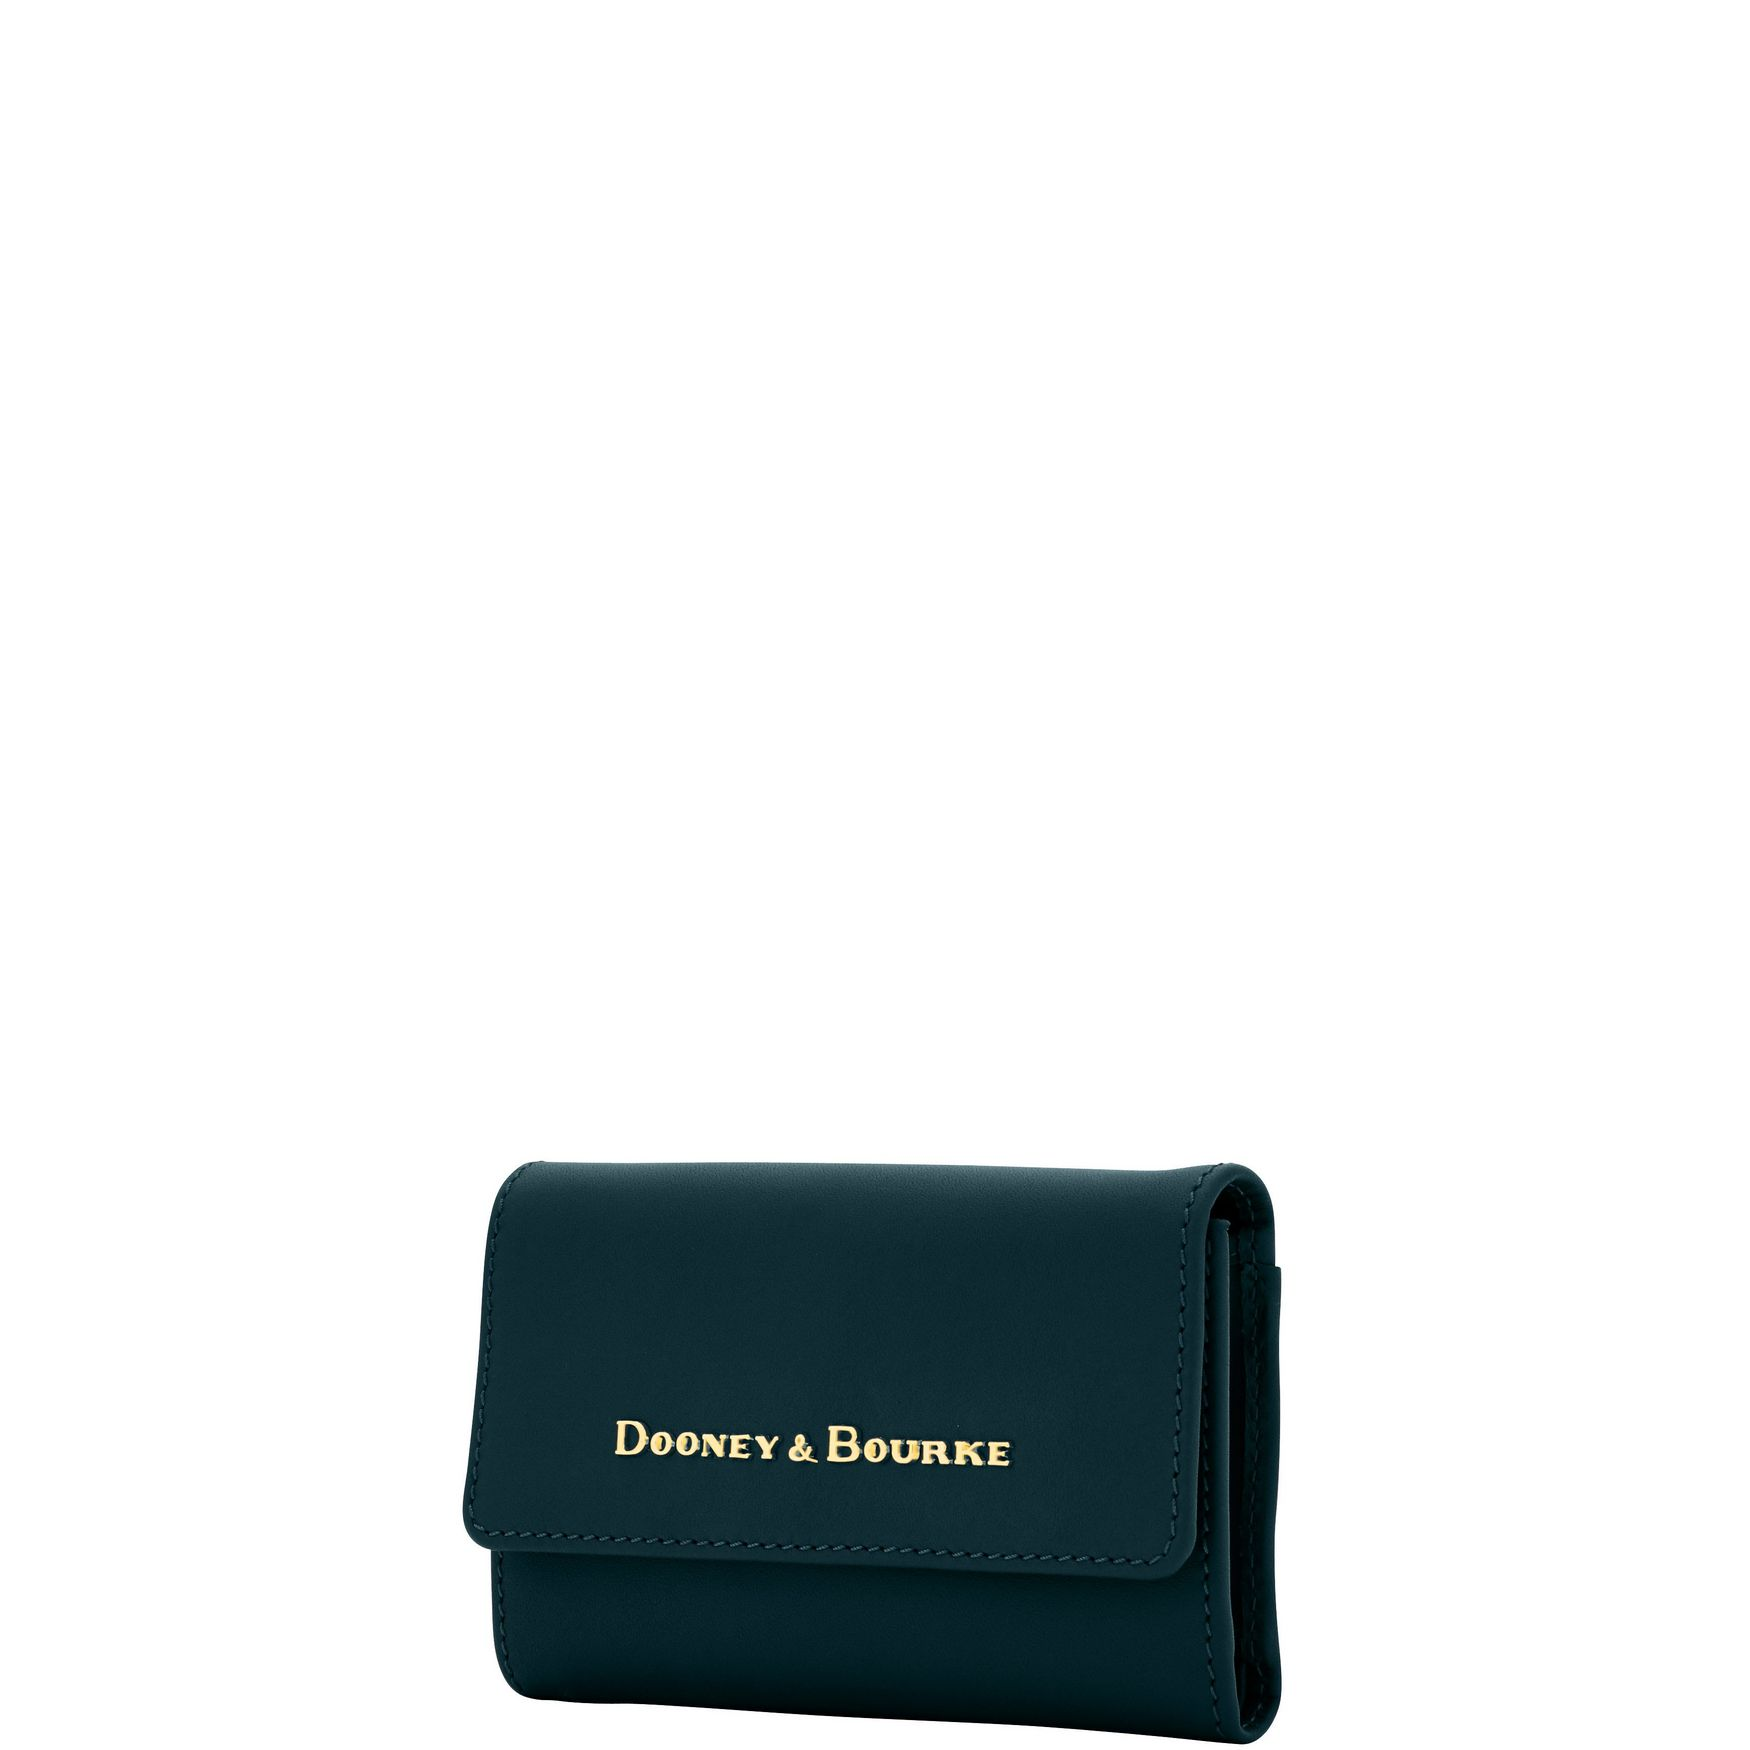 Dooney-amp-Bourke-City-Flap-Wallet thumbnail 7